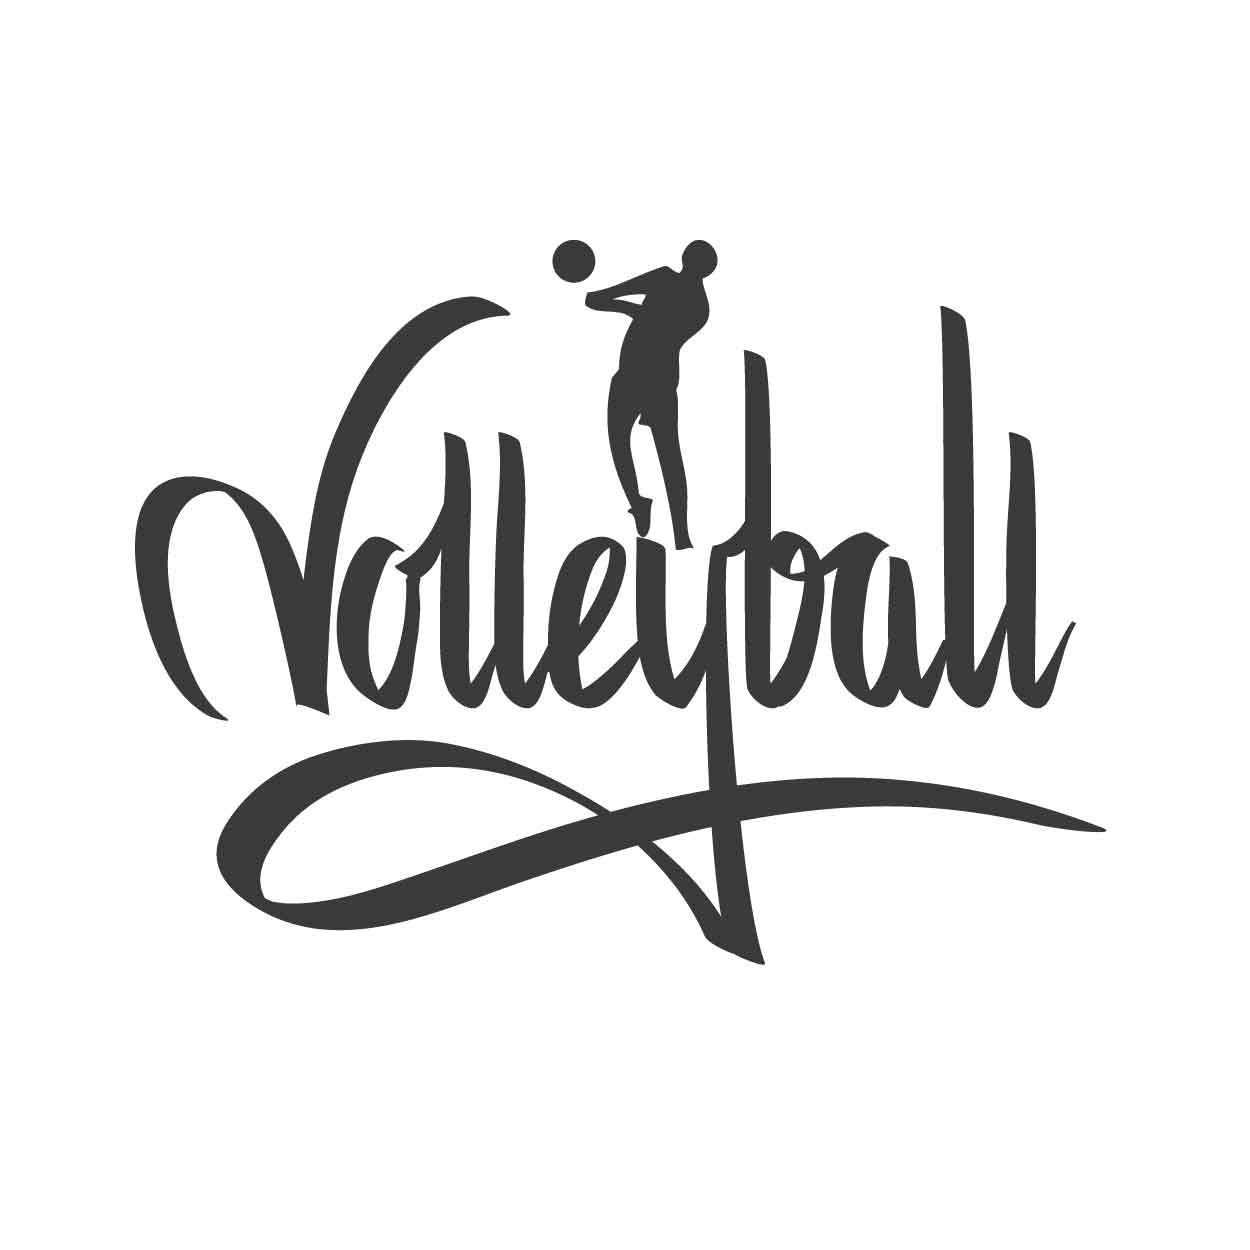 Http Www Tristatevolunteers Org Sports Guidetovbbasics Pdf Volleyball Quotes Volleyball Shirts Volleyball Silhouette